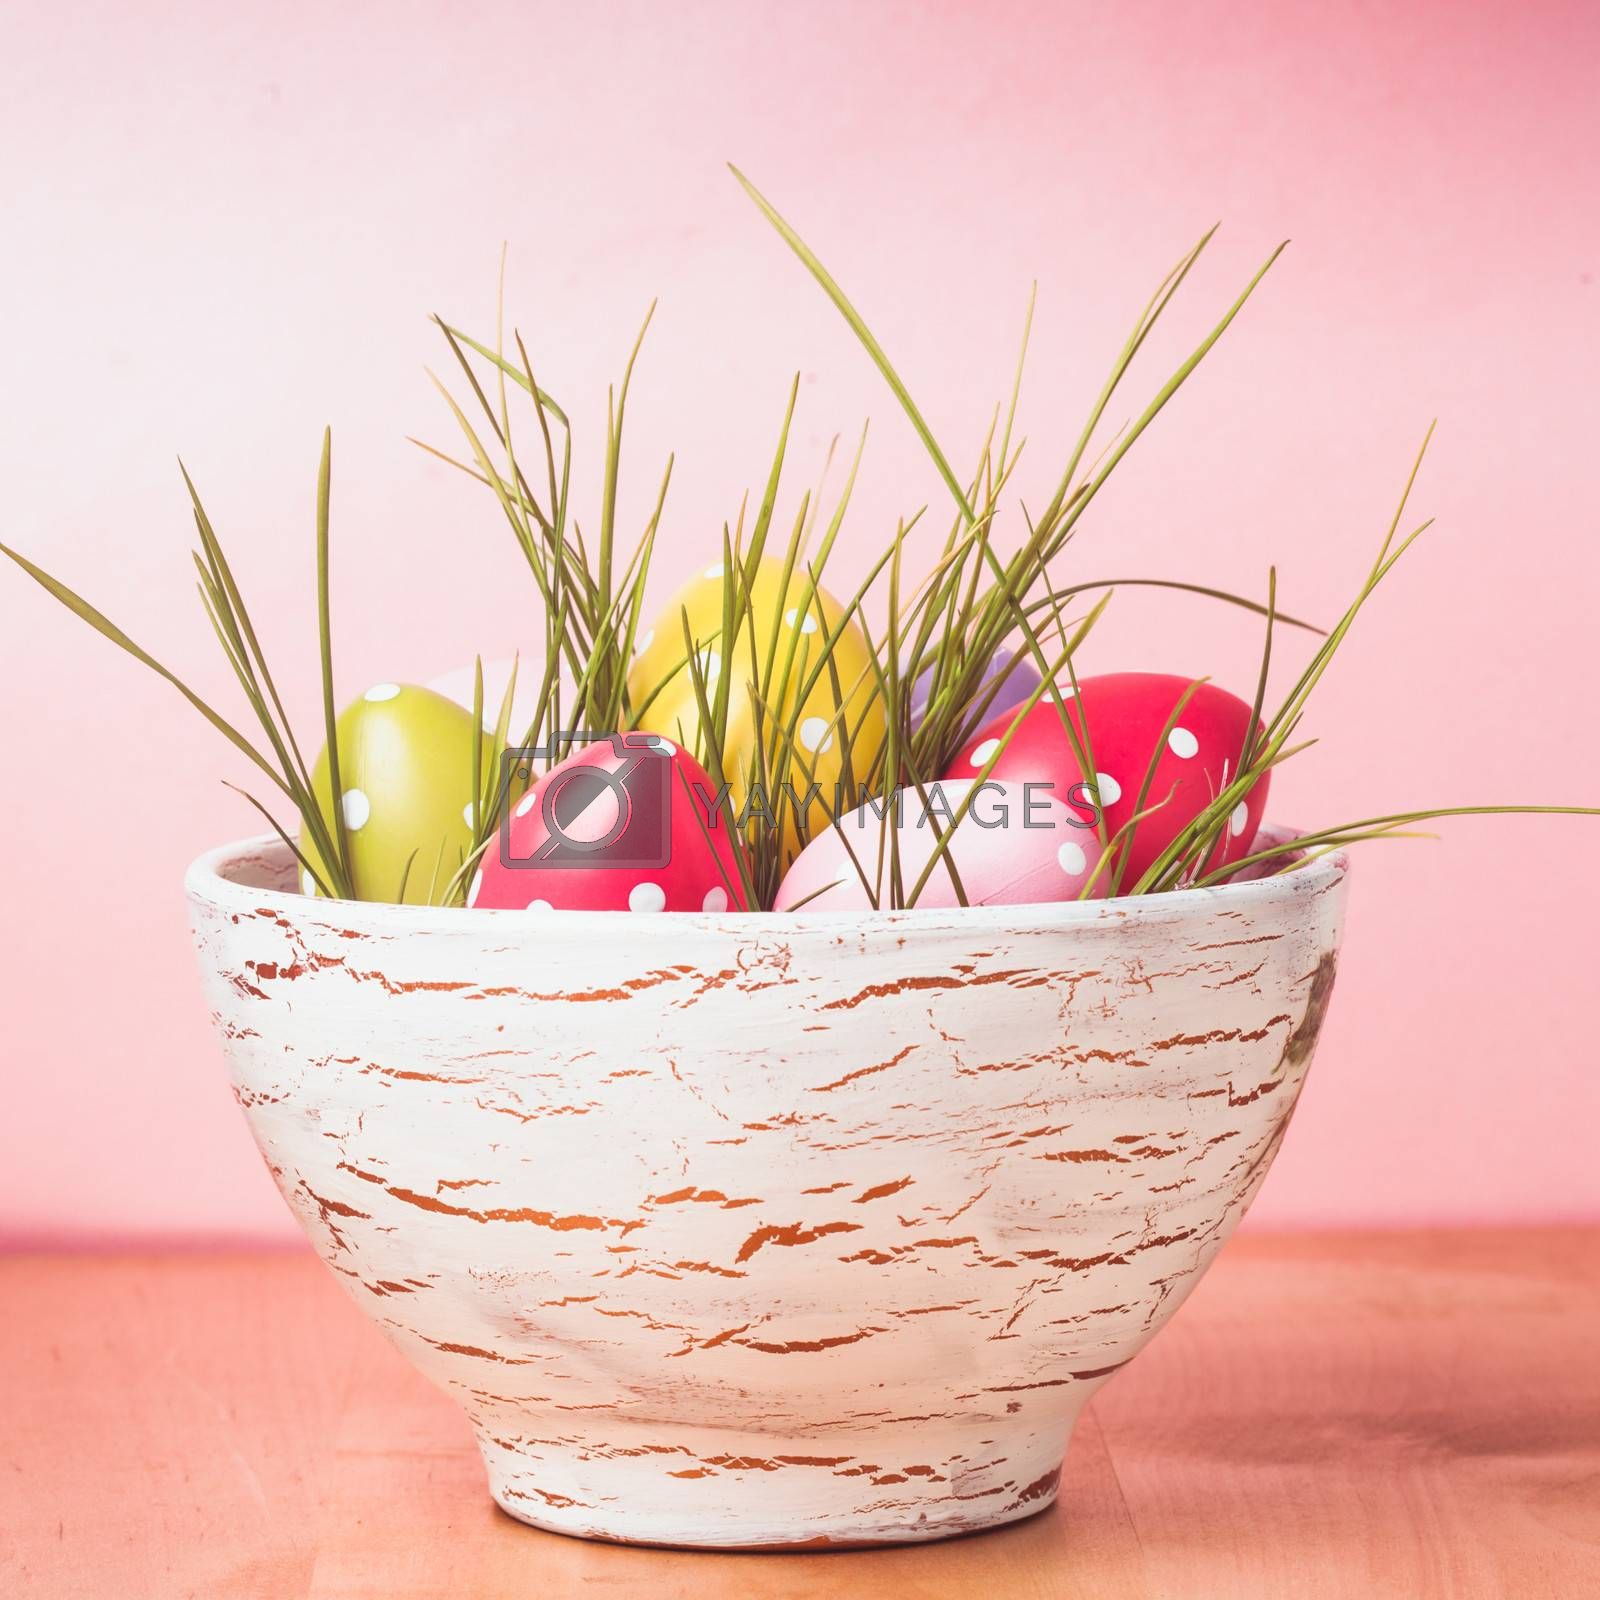 Decorative eggs in pot with grass over pink background. Easter decor.